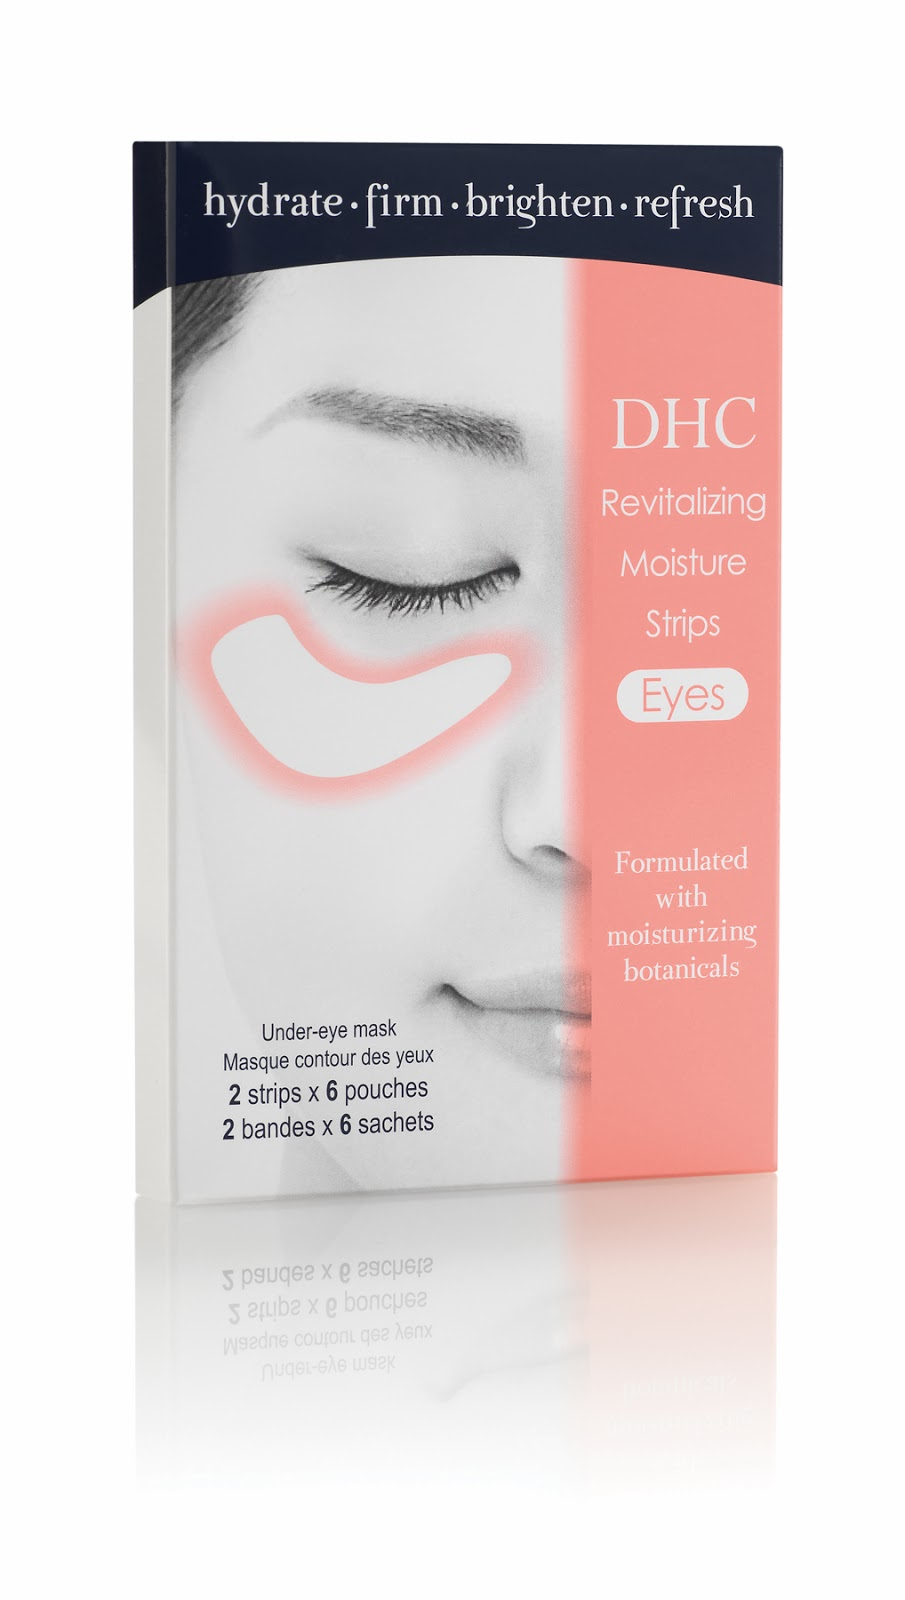 DHC Revitalizing Moisture Strips – Eyes